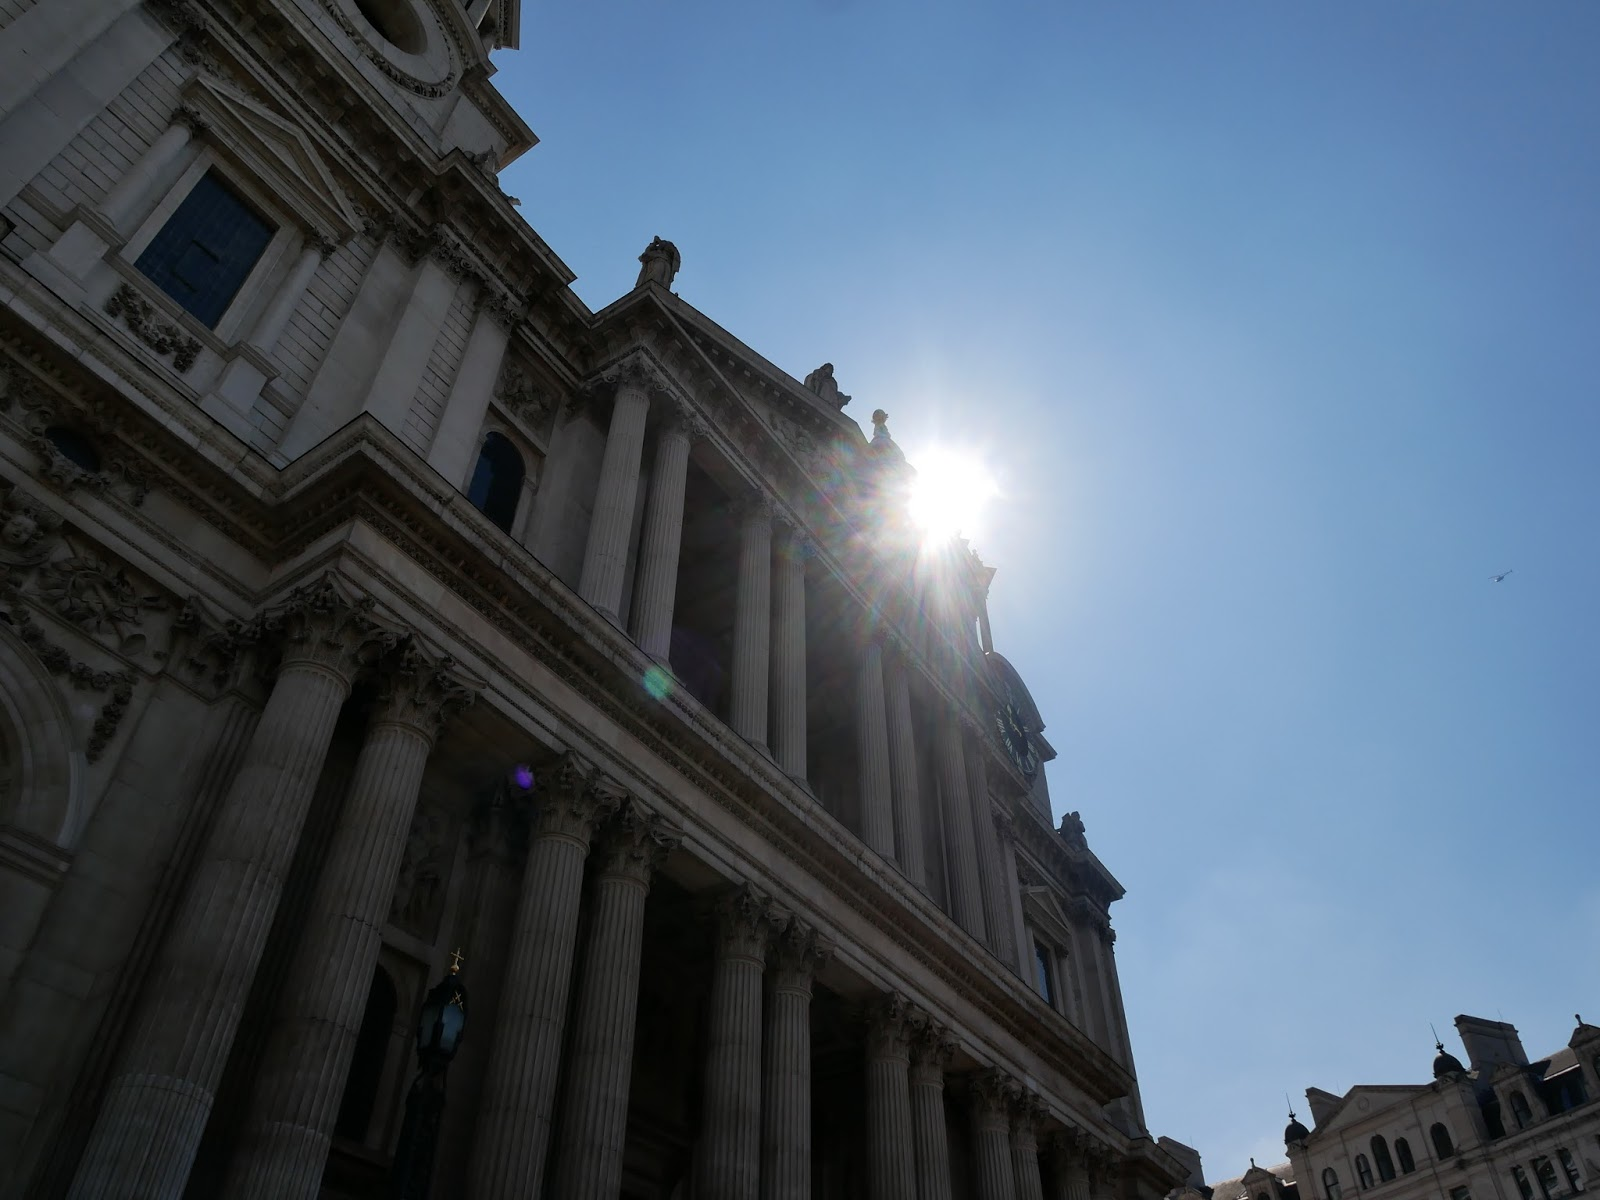 The sun beating down on the front of St. Paul's Cathedral, London